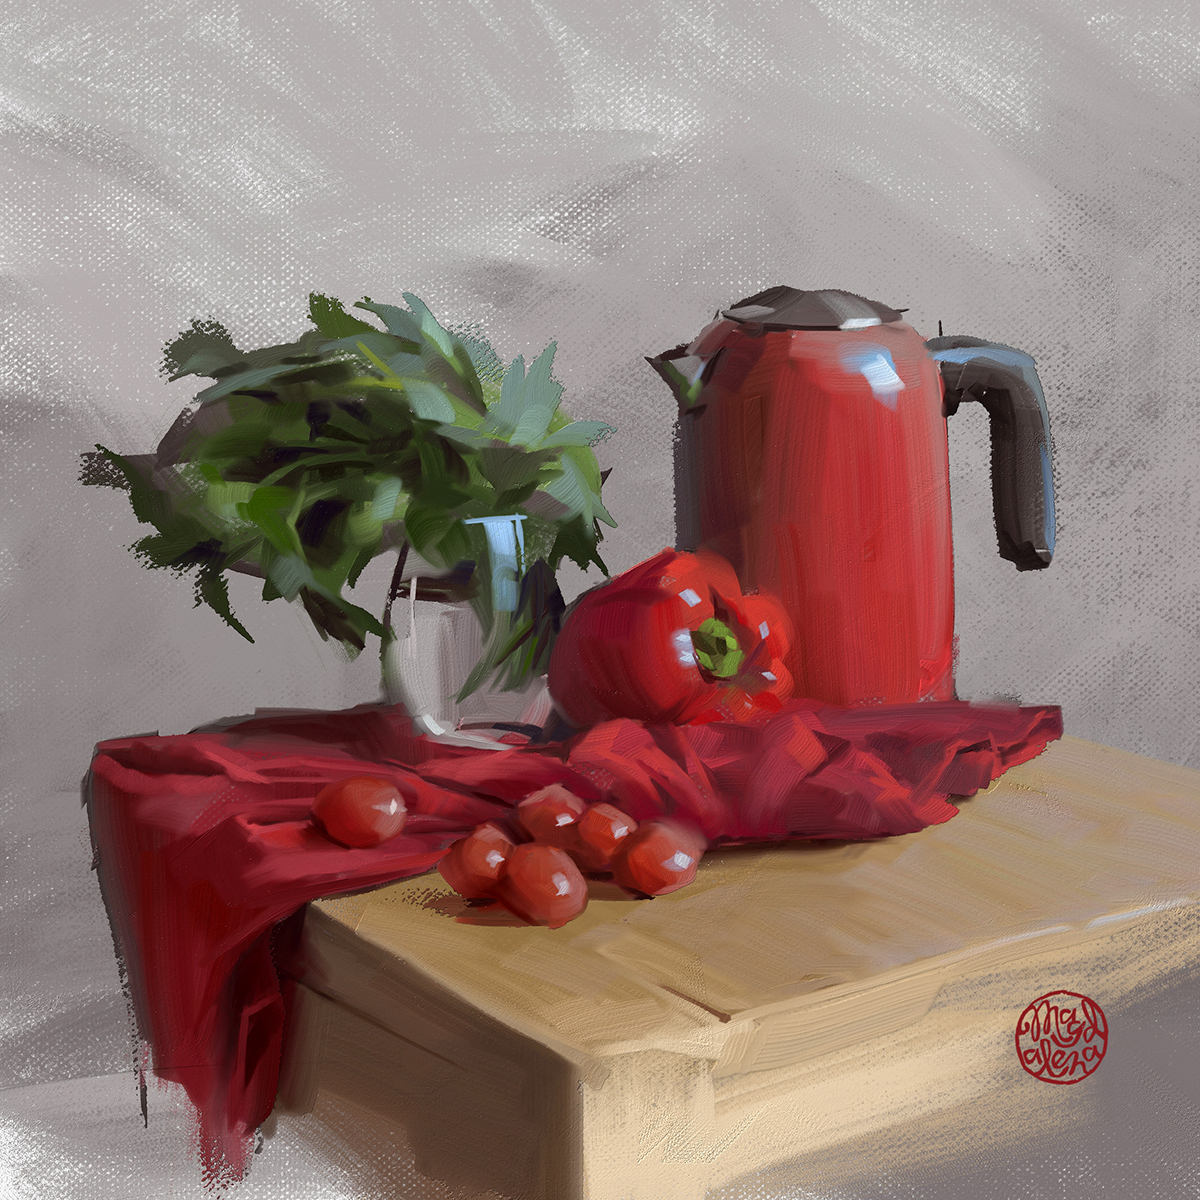 Experimenting with Thick paints in new Corel Painter 2021<3 #digitalpainting #art #artsy #painting #digitalart #corelpainter  #hypnotizing_arts #artwork #artist2d #2dartist #wacom #oils #oilpainting #stilllife #red #thickpaintpic.twitter.com/78aTaMJf5h